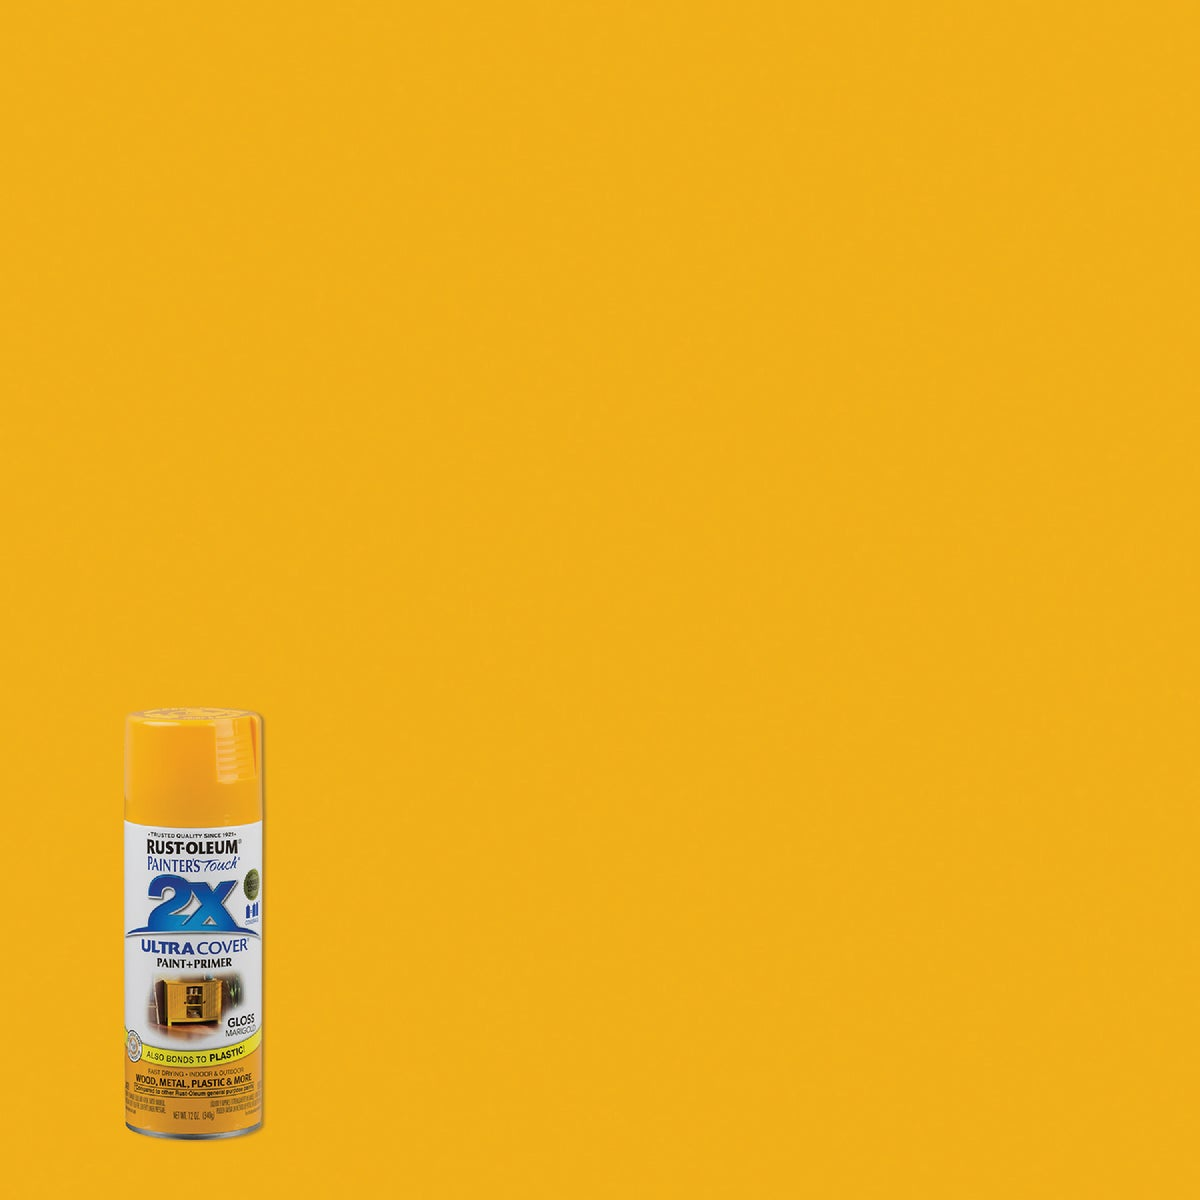 GLS MARIGOLD SPRAY PAINT - 249862 by Rustoleum